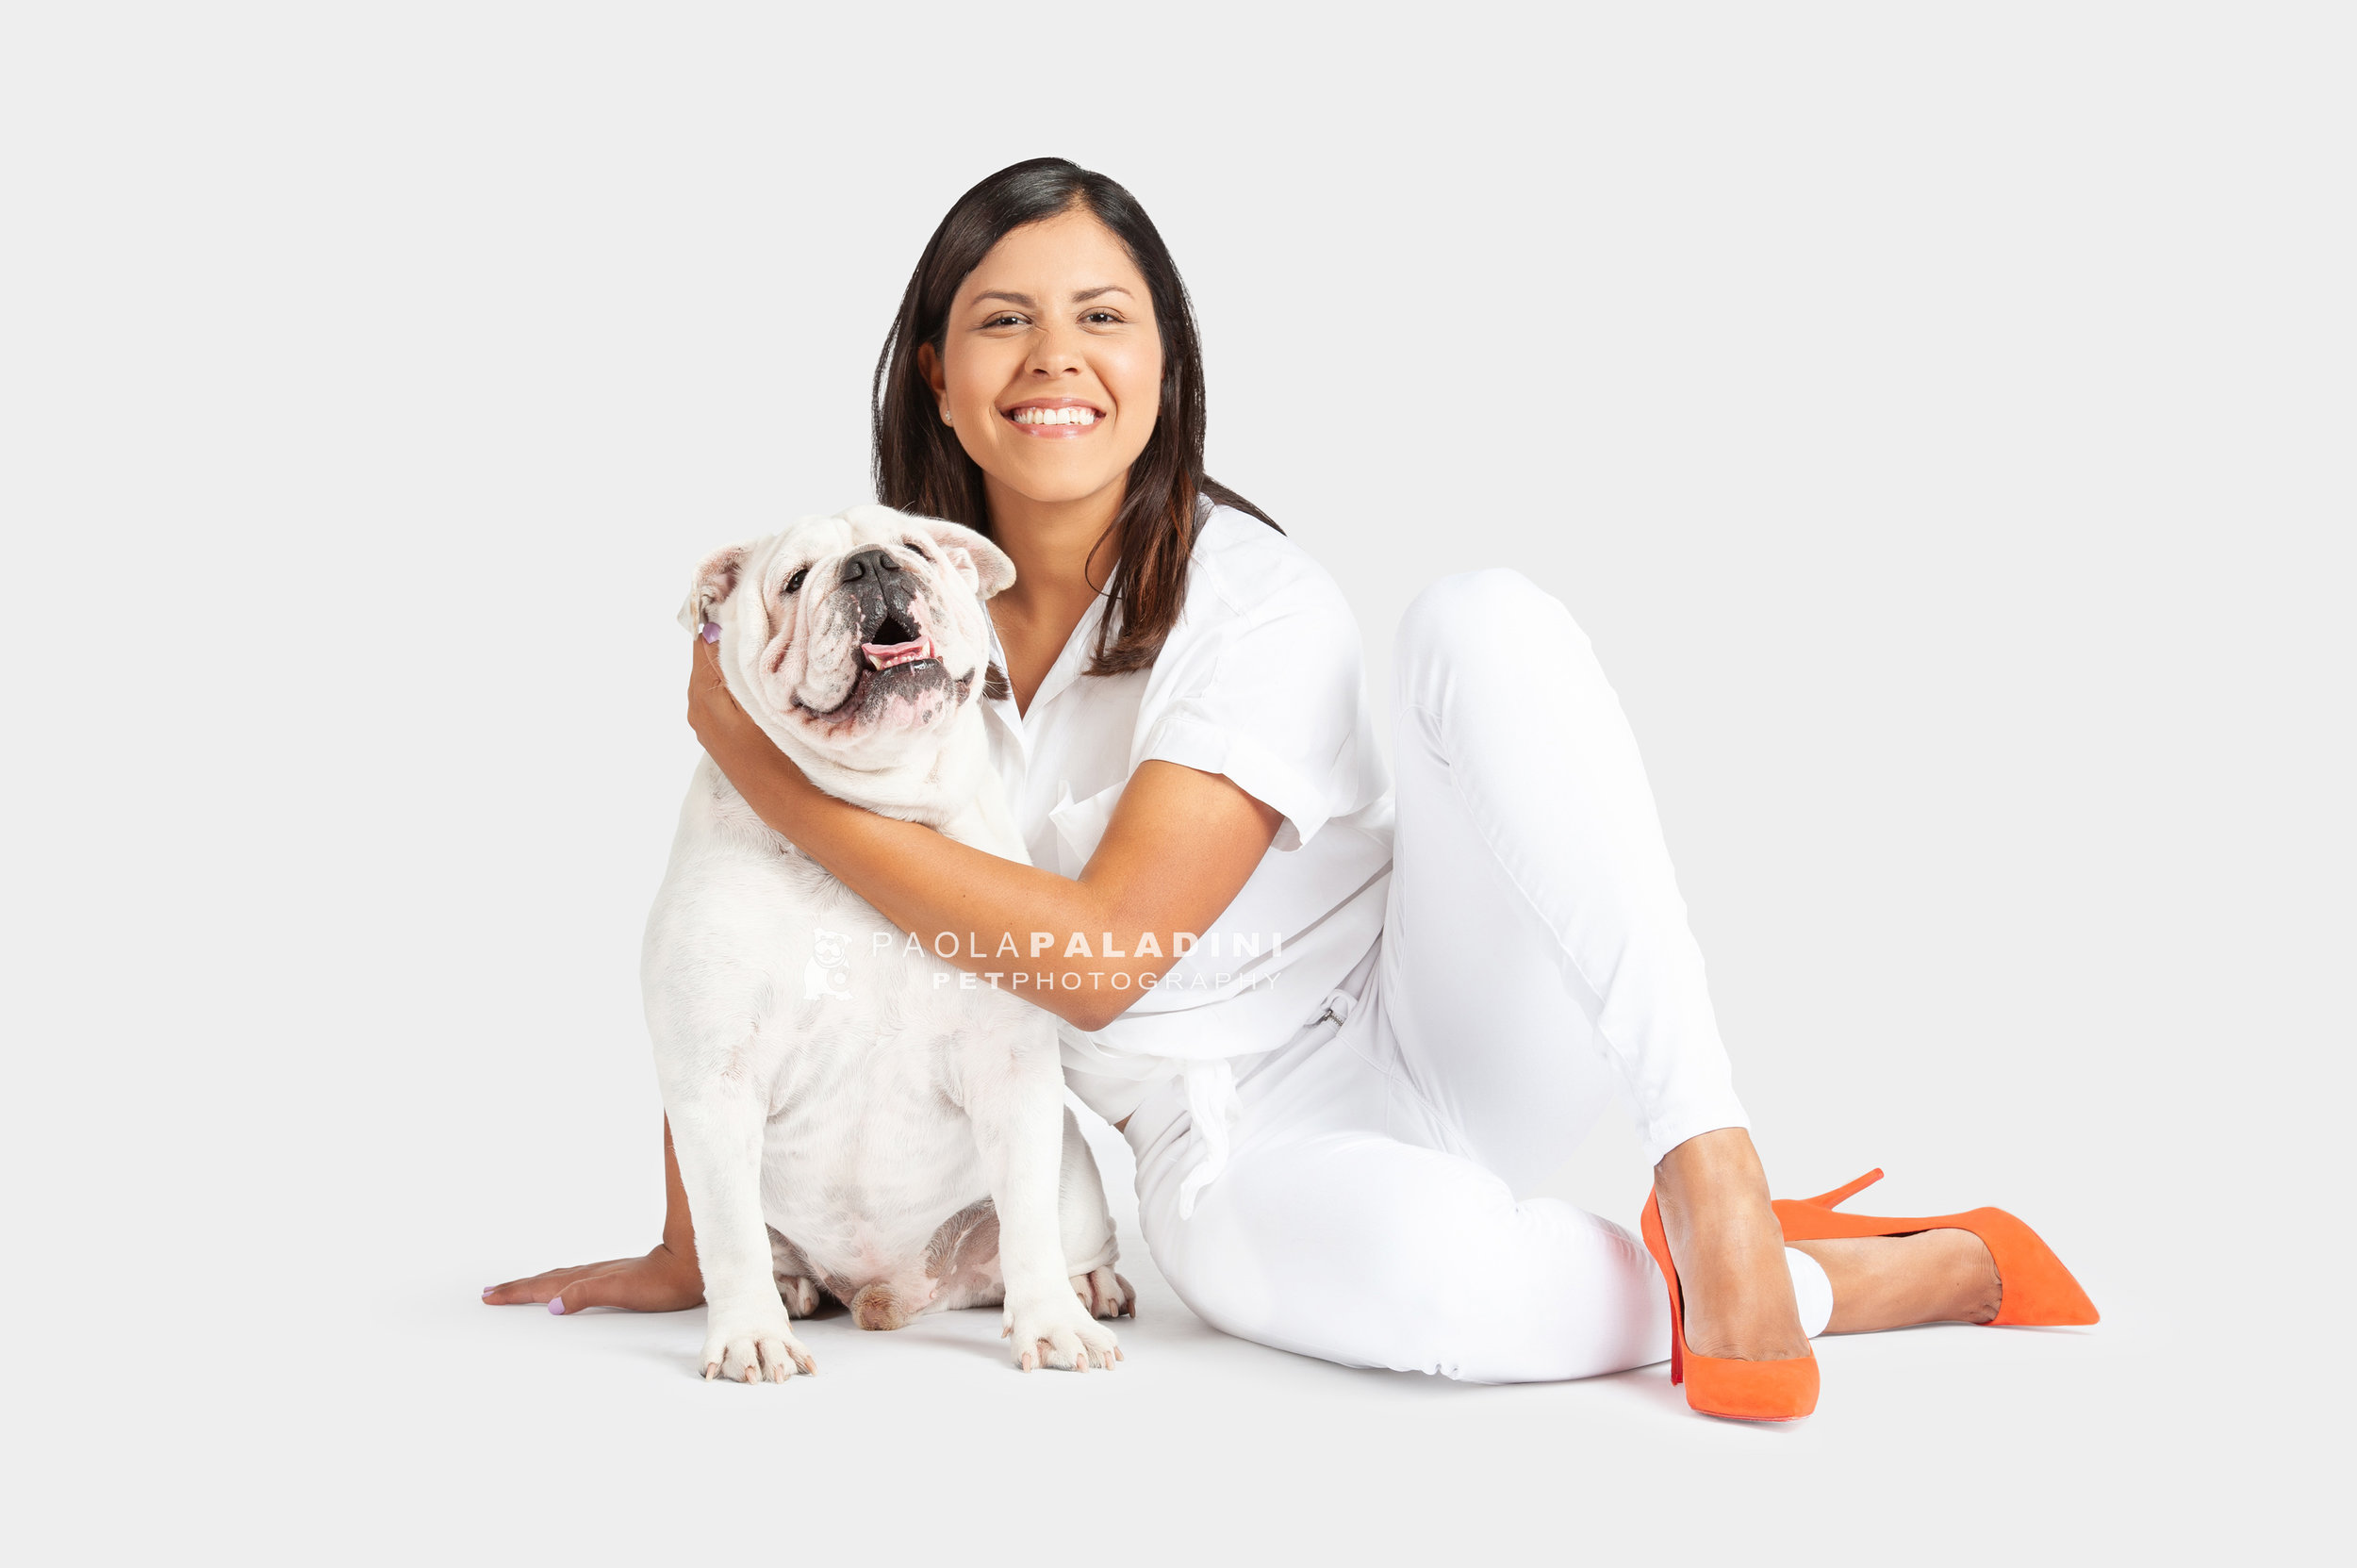 Paola-Paladini-White-on-White-Hounds-and-Heels-Bulldog-1